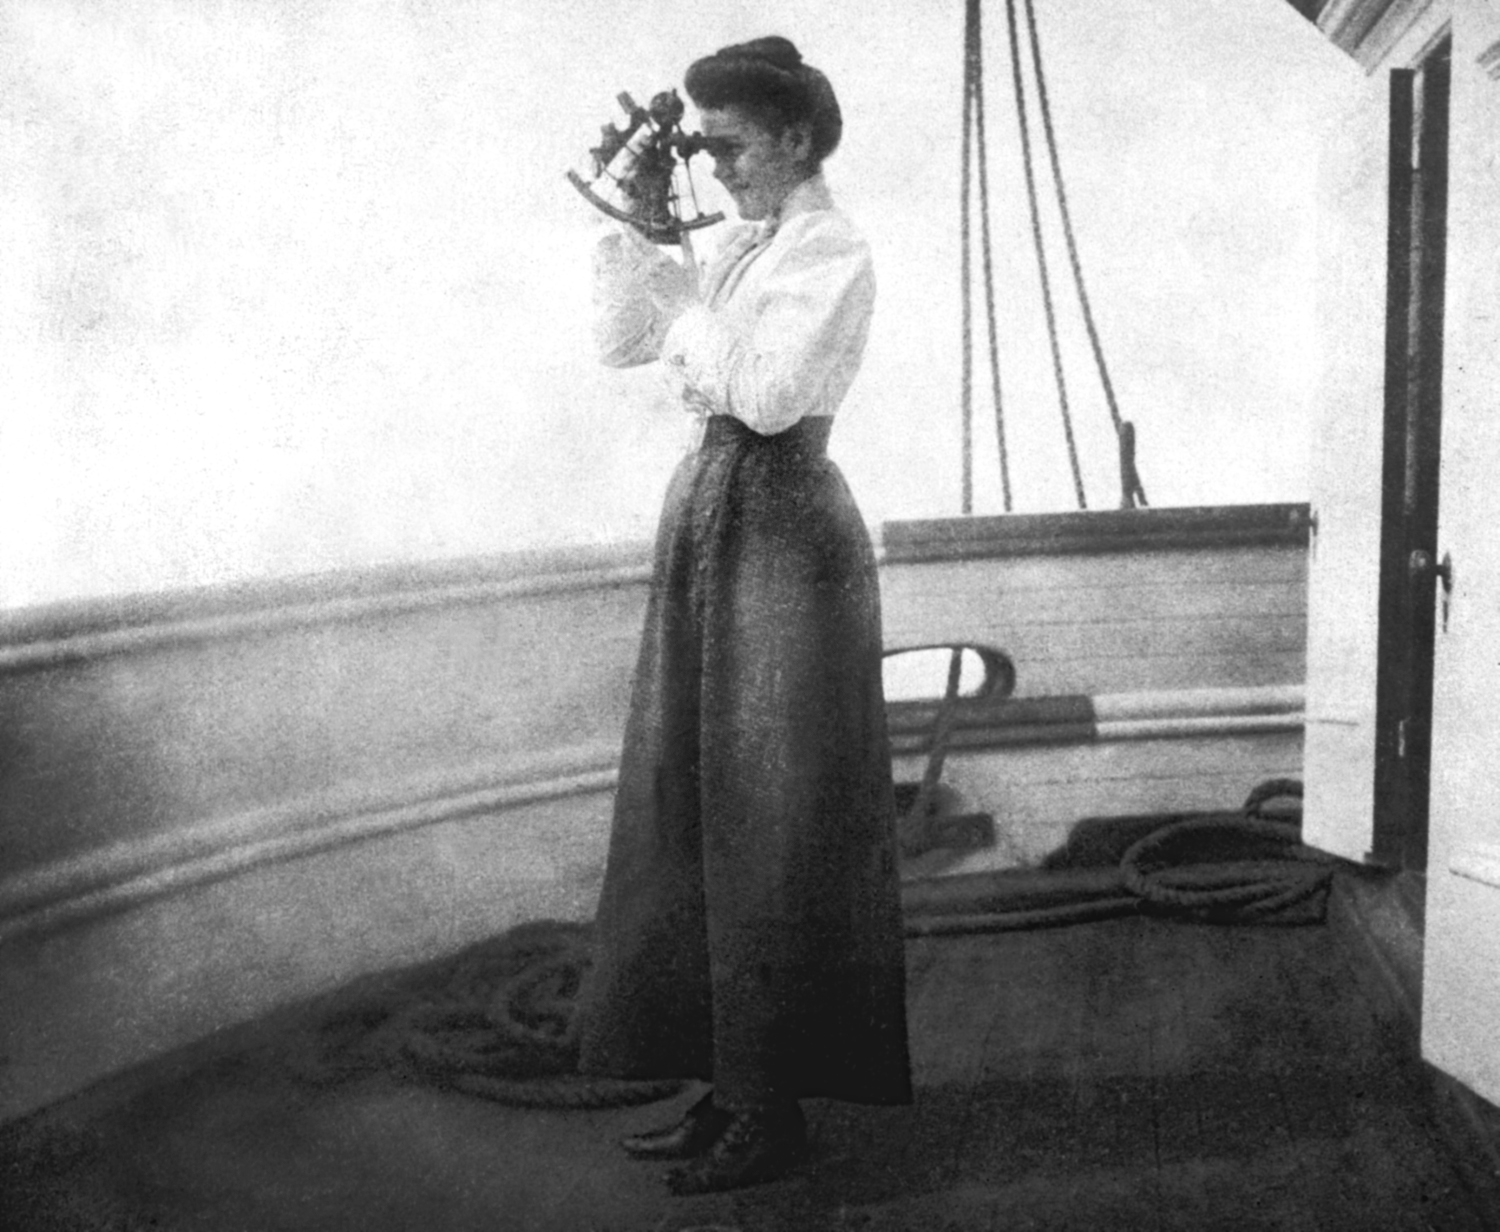 th century women position in great britain position in agnes tapley sailed her husband aboard the bark saint james during the late 19th century